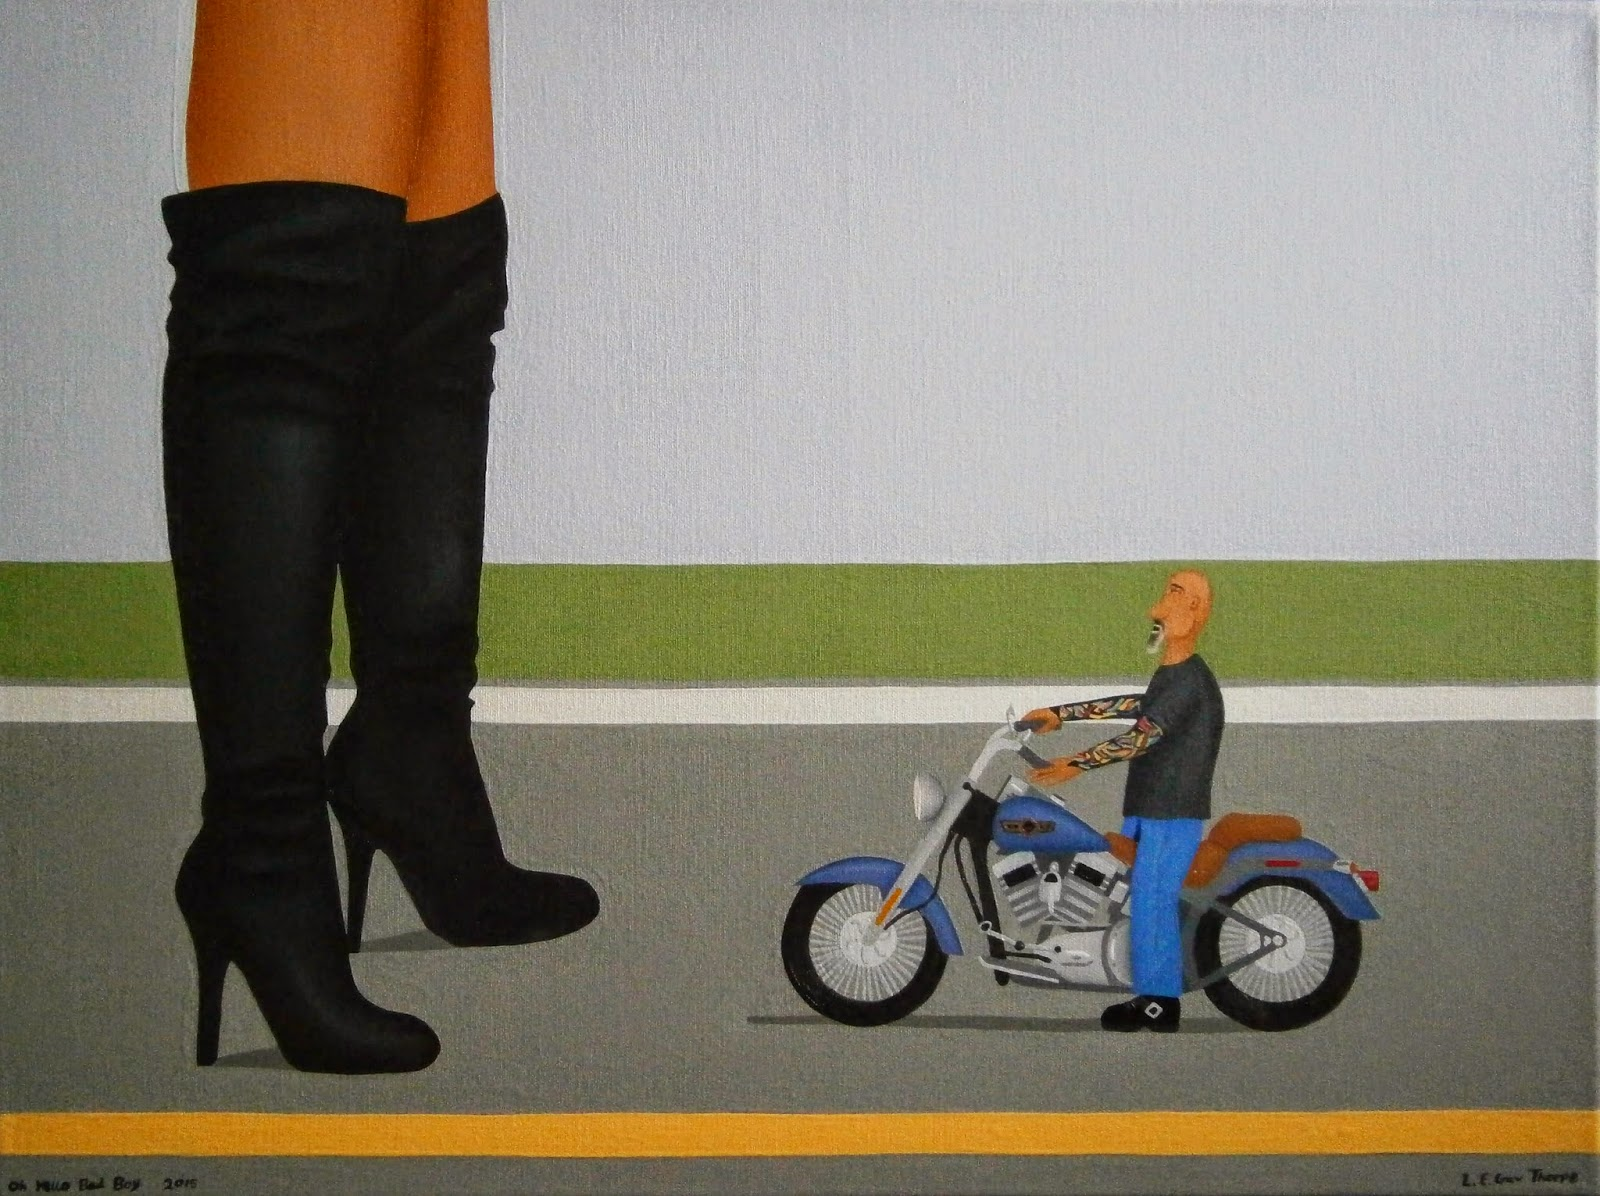 Oh Hello Bad Boy - A shrunken bald biker man, with full-sleeve tattoos, looking up at a giant woman wearing sexy stiletto thigh high biker boots and standing over his Harley Davidson motorbike